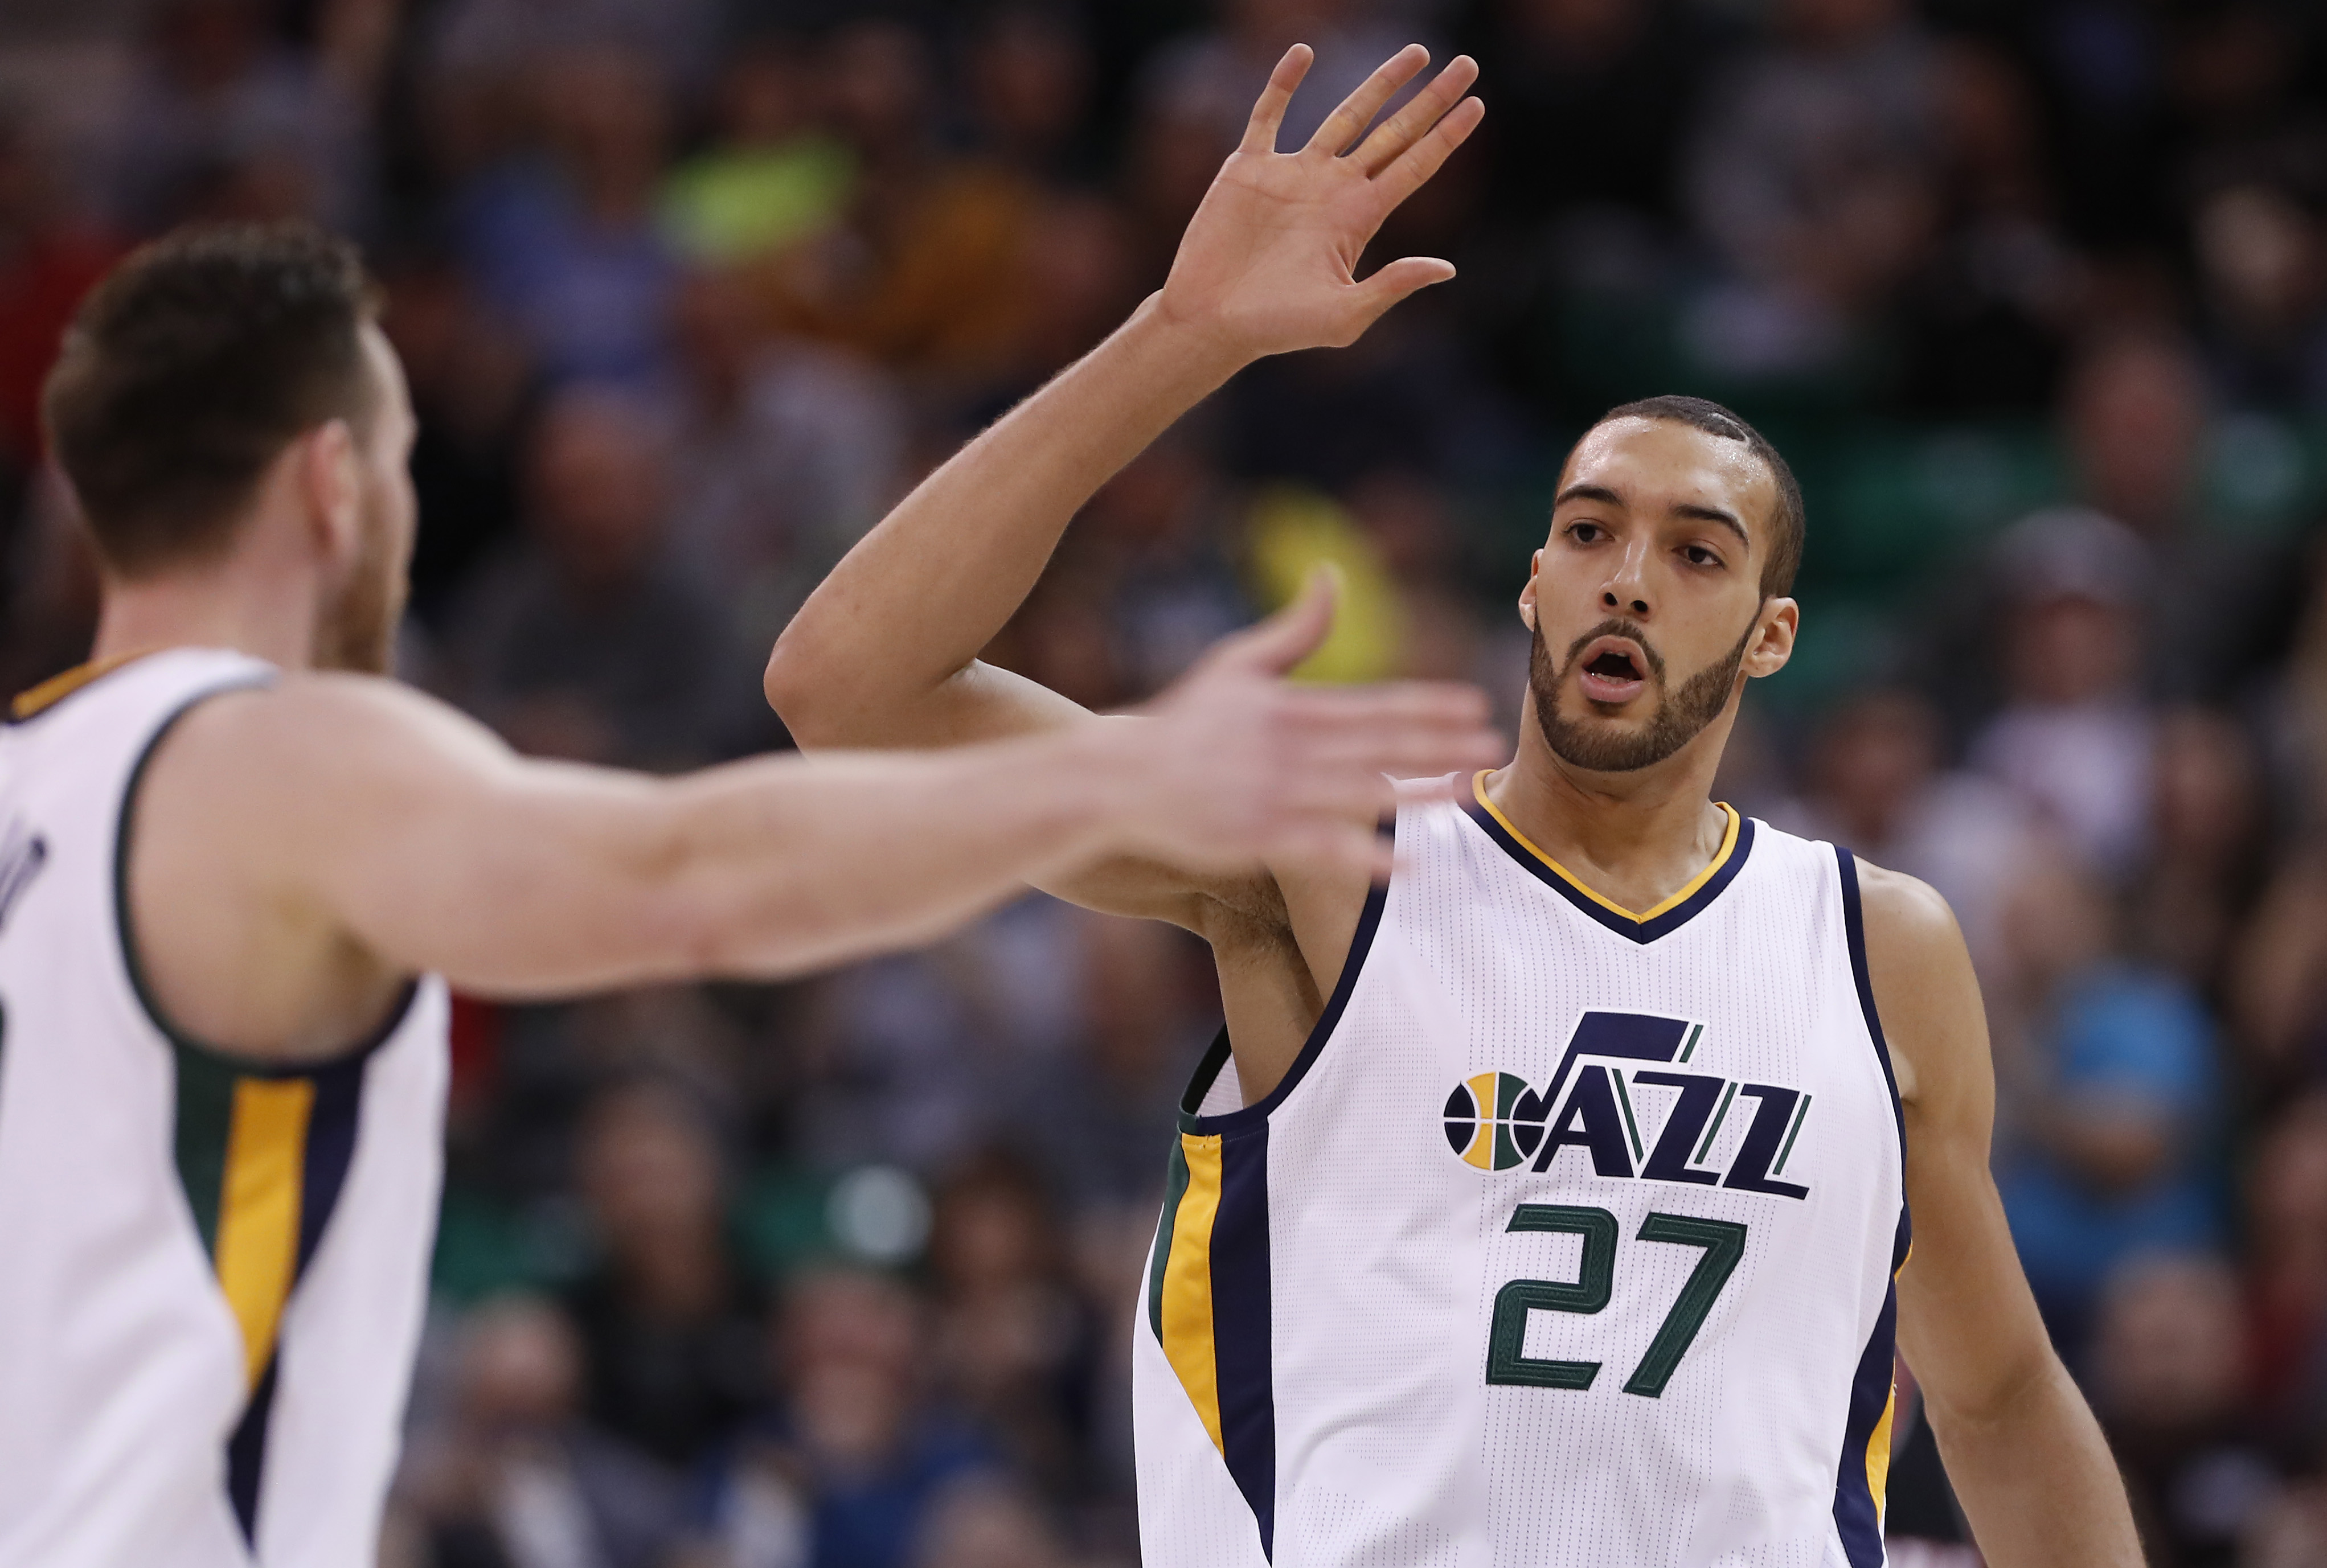 9879895-nba-portland-trail-blazers-at-utah-jazz